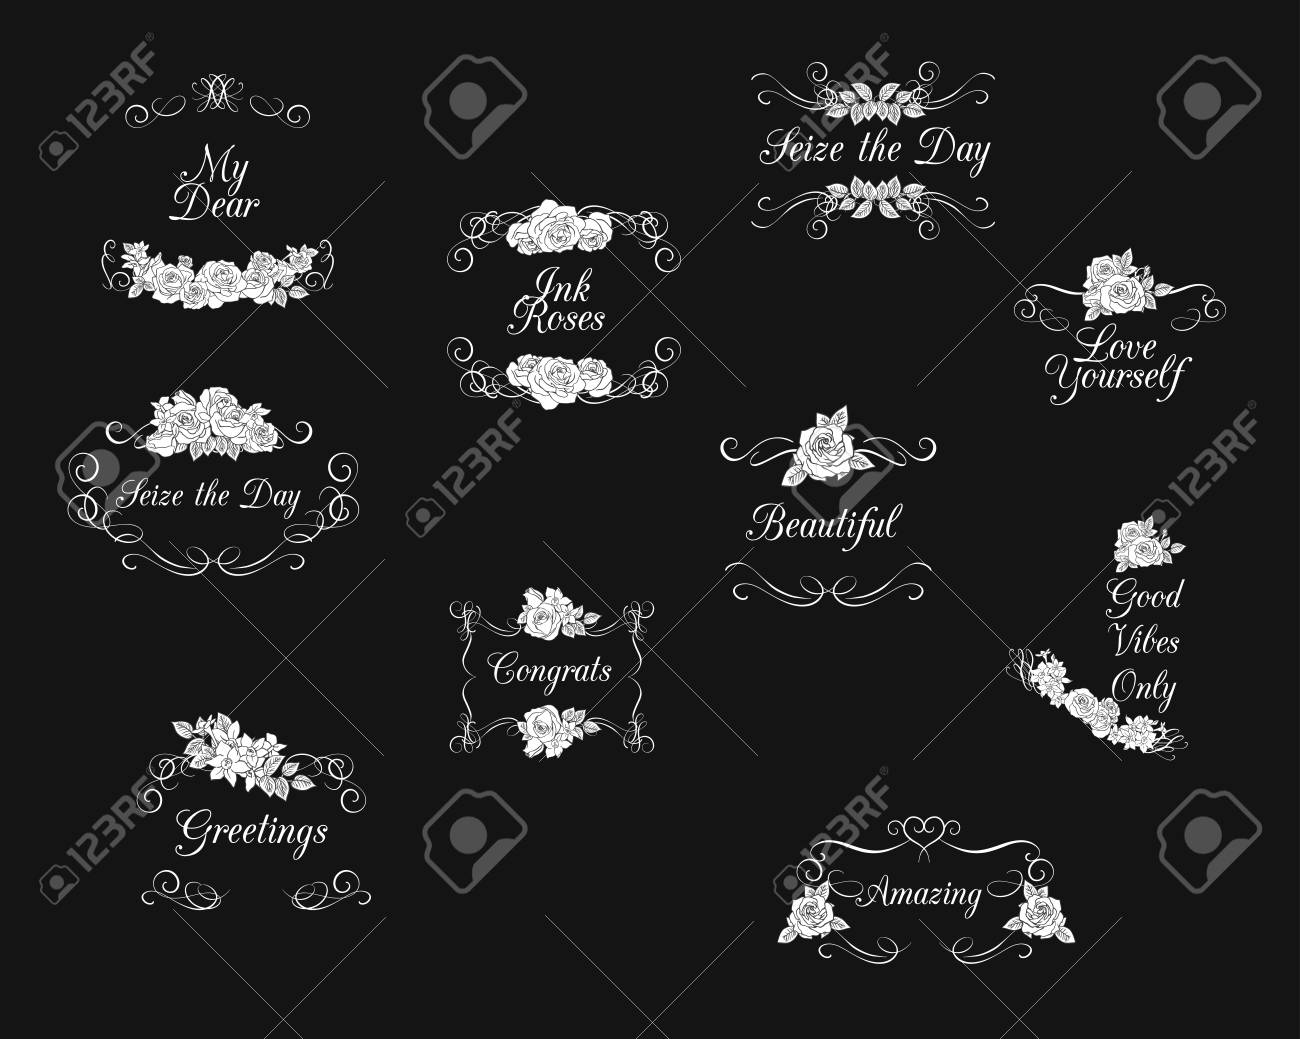 Vectored rose frames with flourishes ink drawn floral ornaments vector vectored rose frames with flourishes ink drawn floral ornaments black and white flower backgrounds mightylinksfo